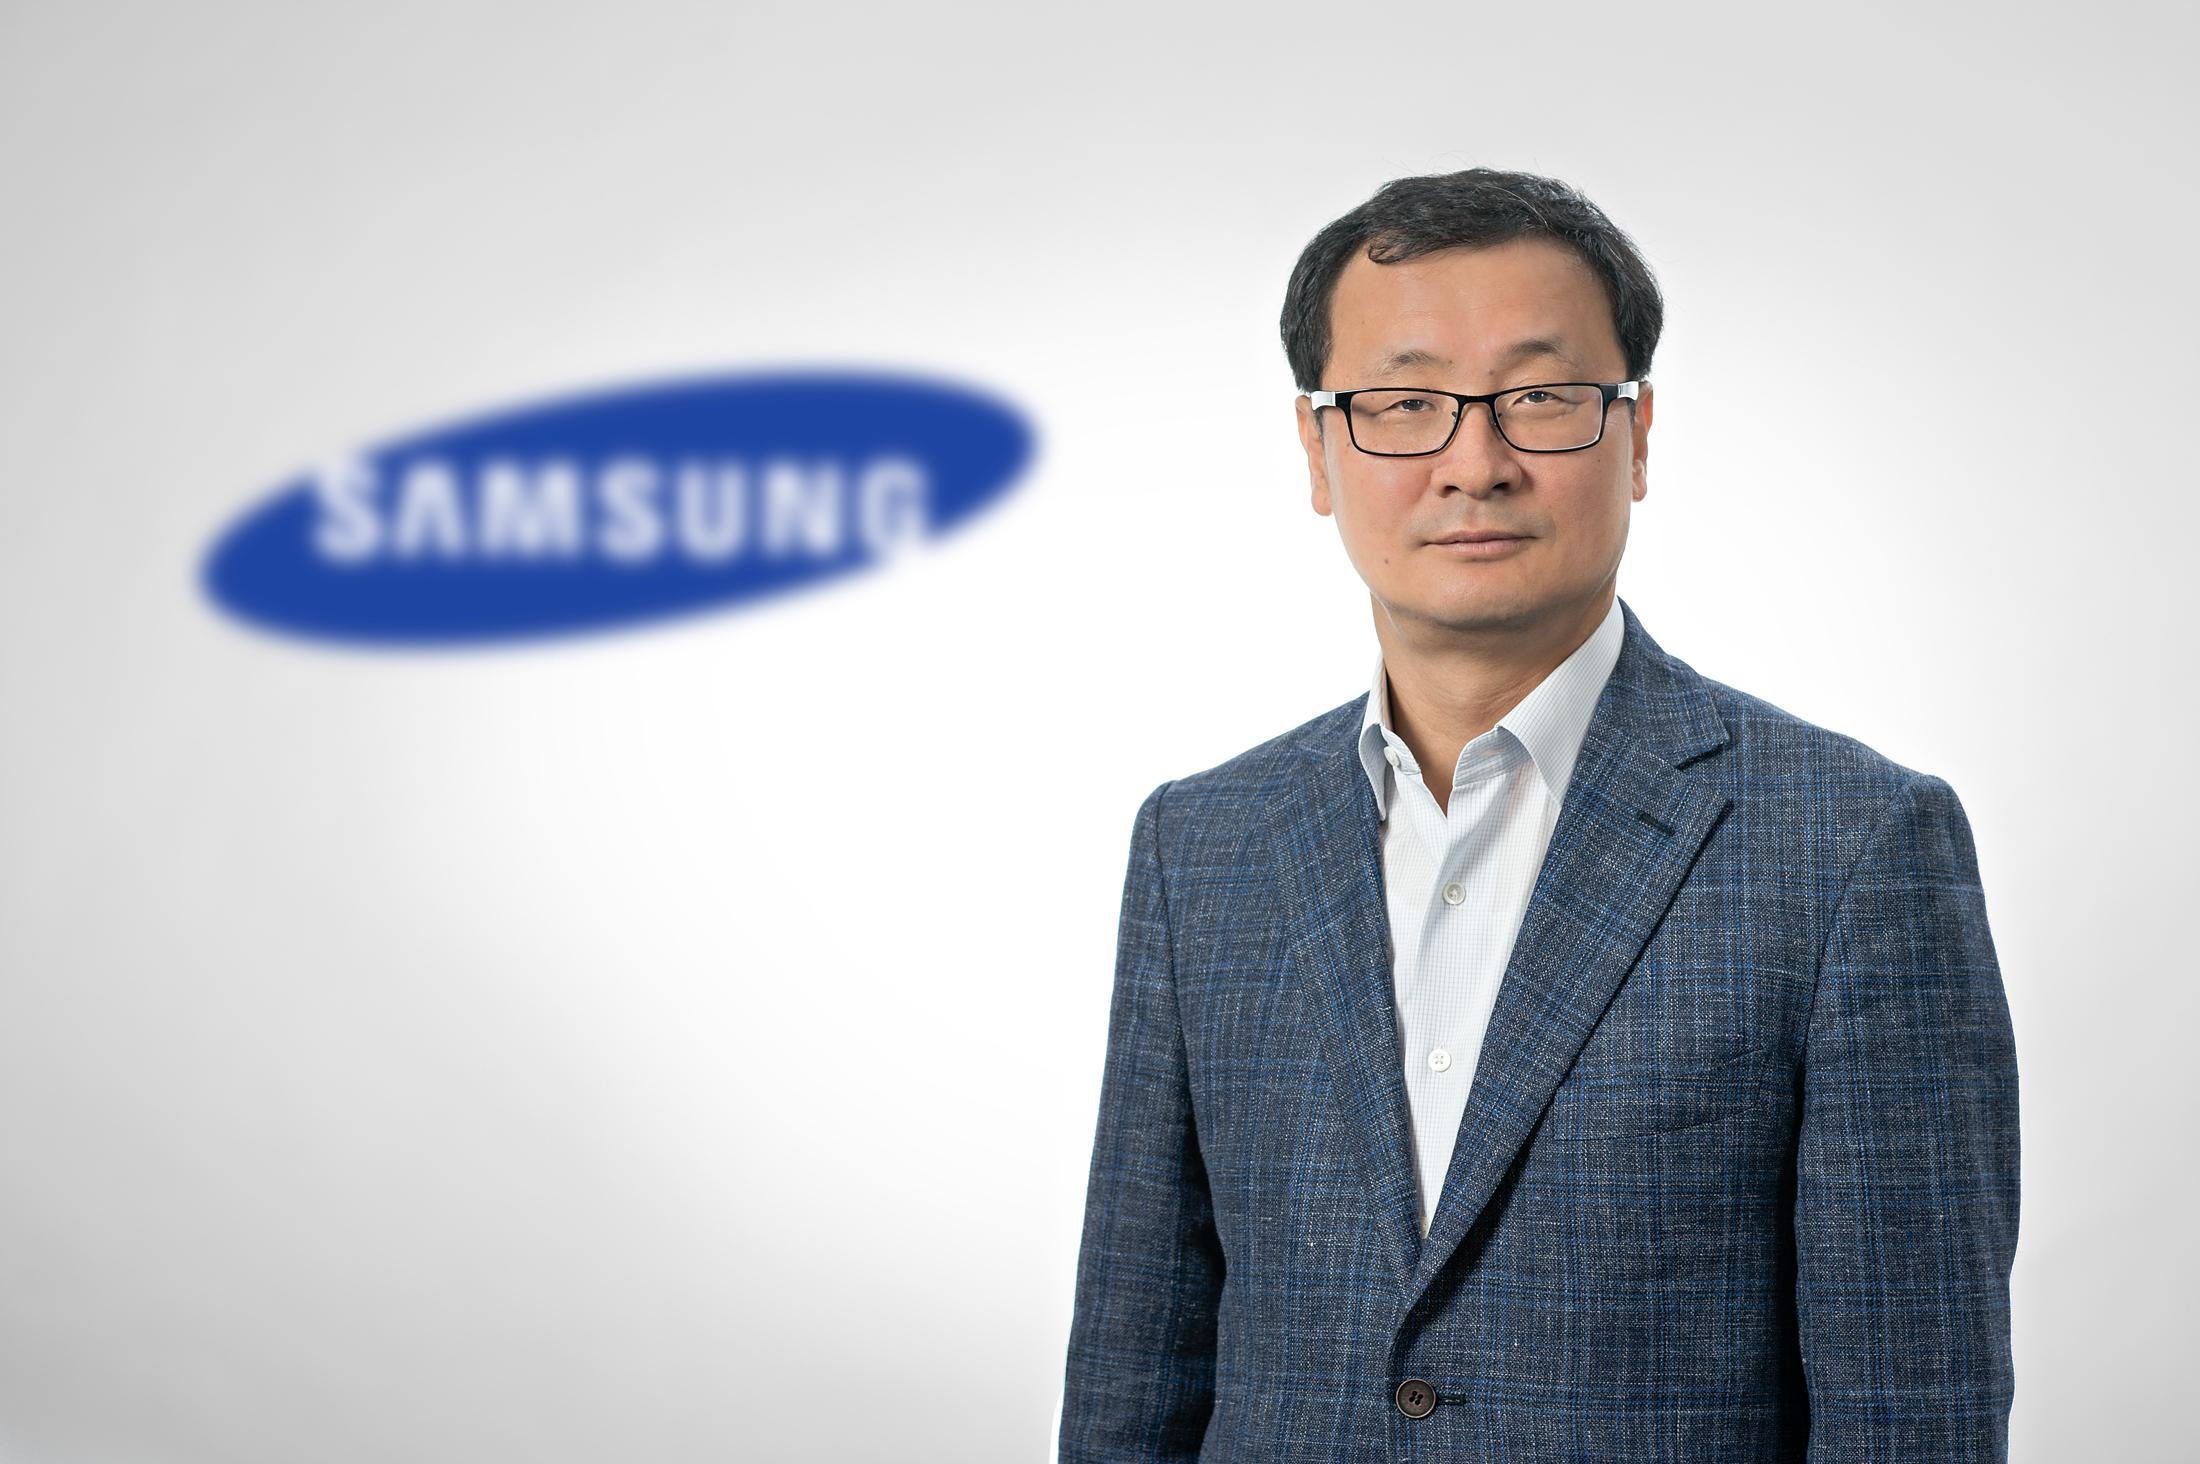 f hrungswechsel sungwan myung ist neuer pr sident von samsung electronics. Black Bedroom Furniture Sets. Home Design Ideas